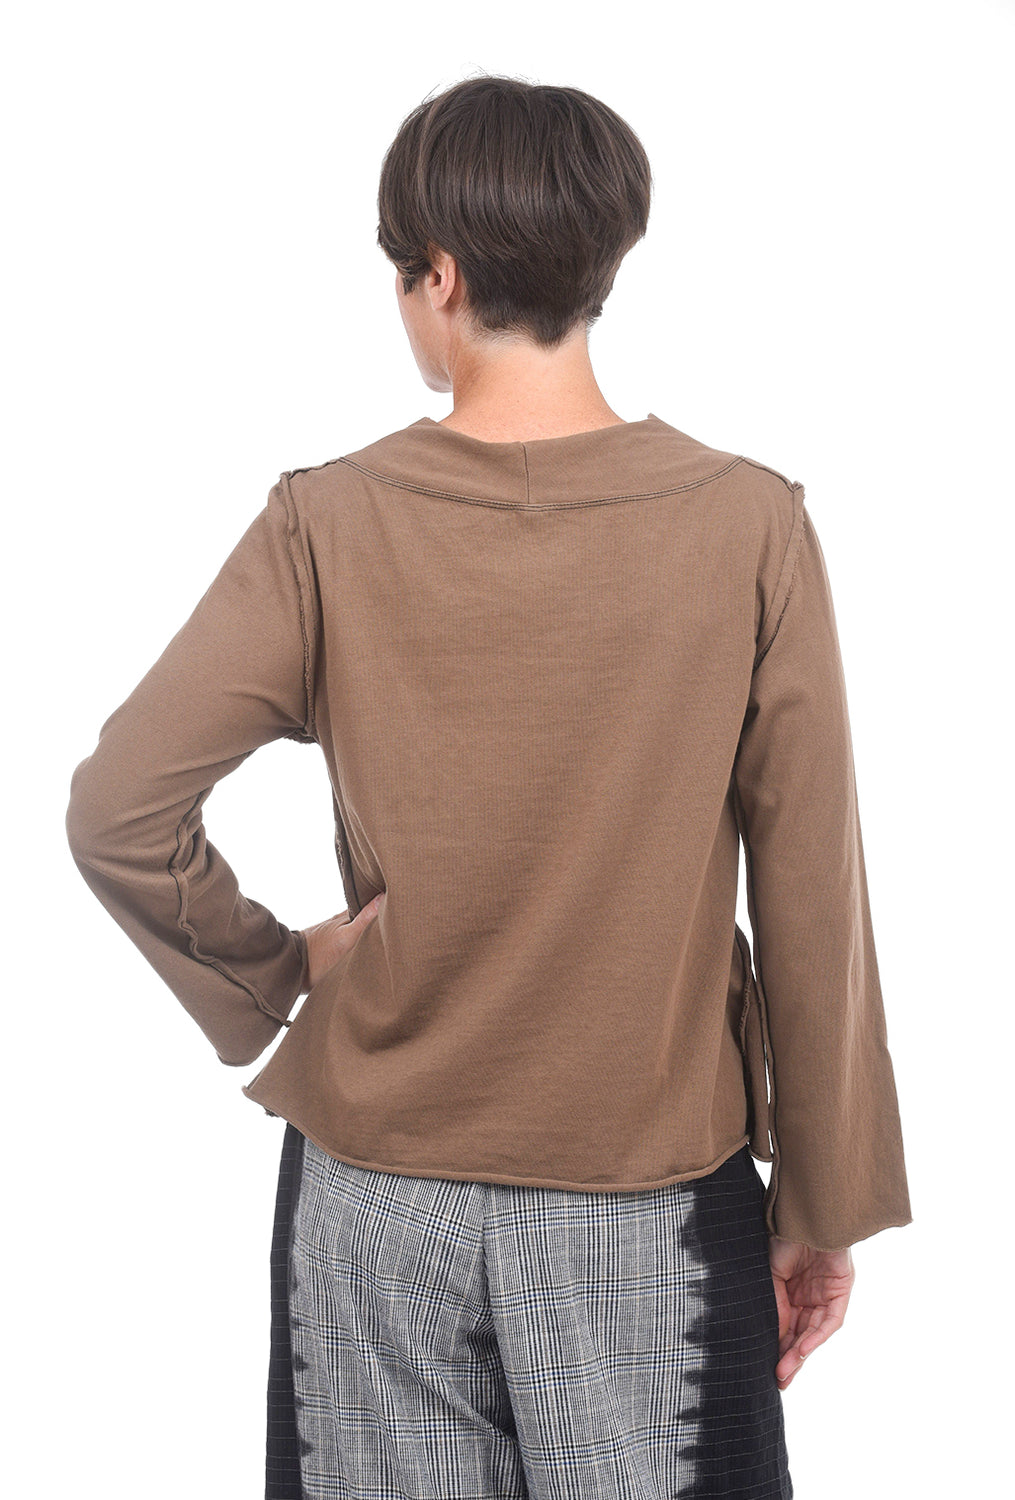 Cynthia Ashby Solid Sadie Top, Chocolate